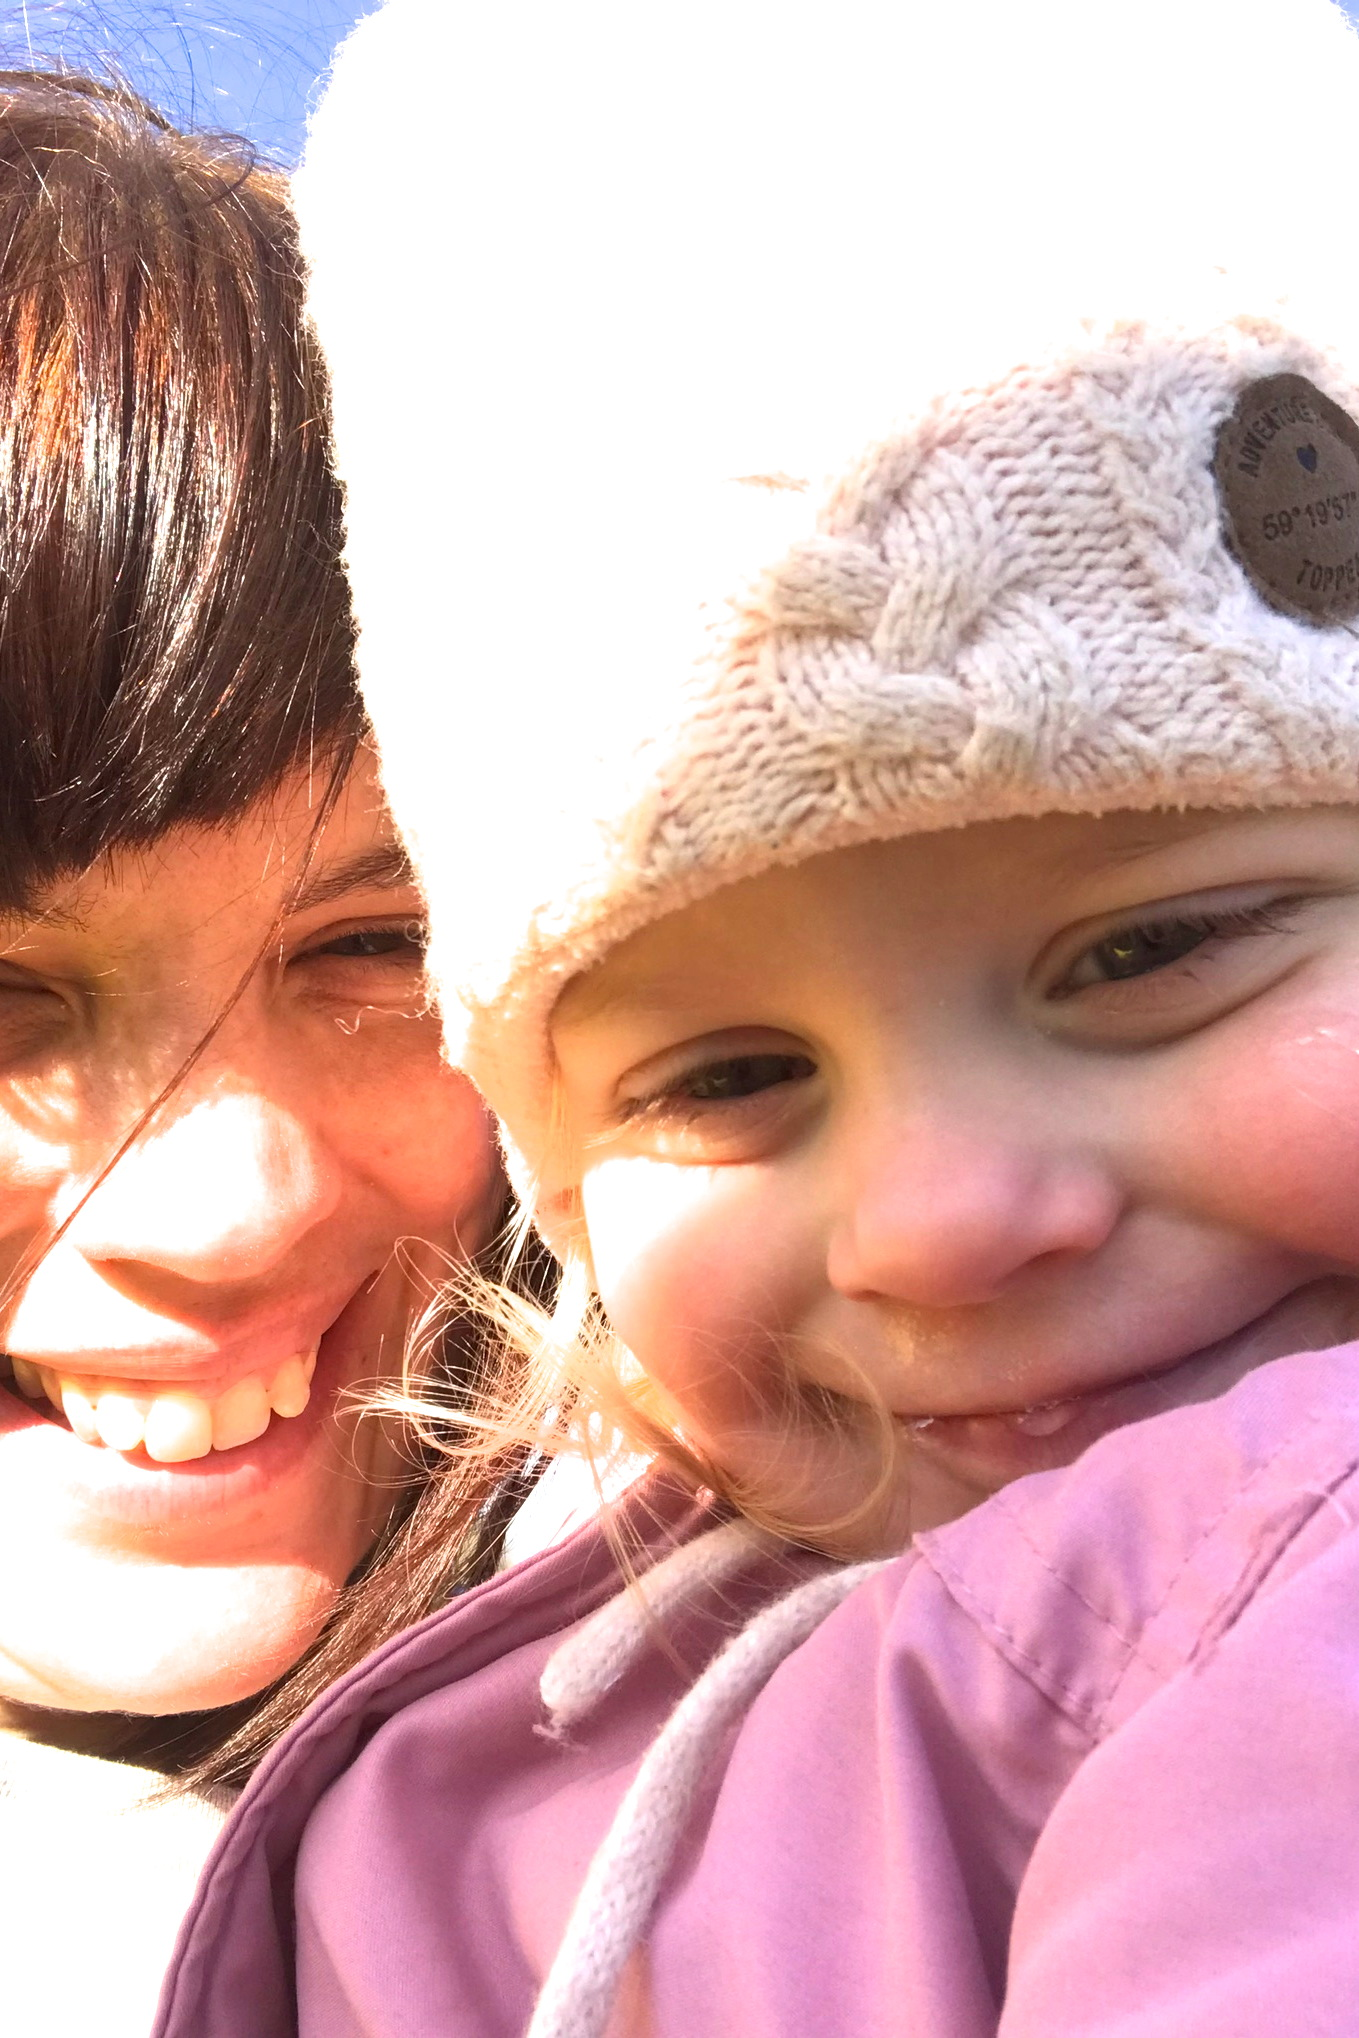 Two year old smiling in selfie with mother